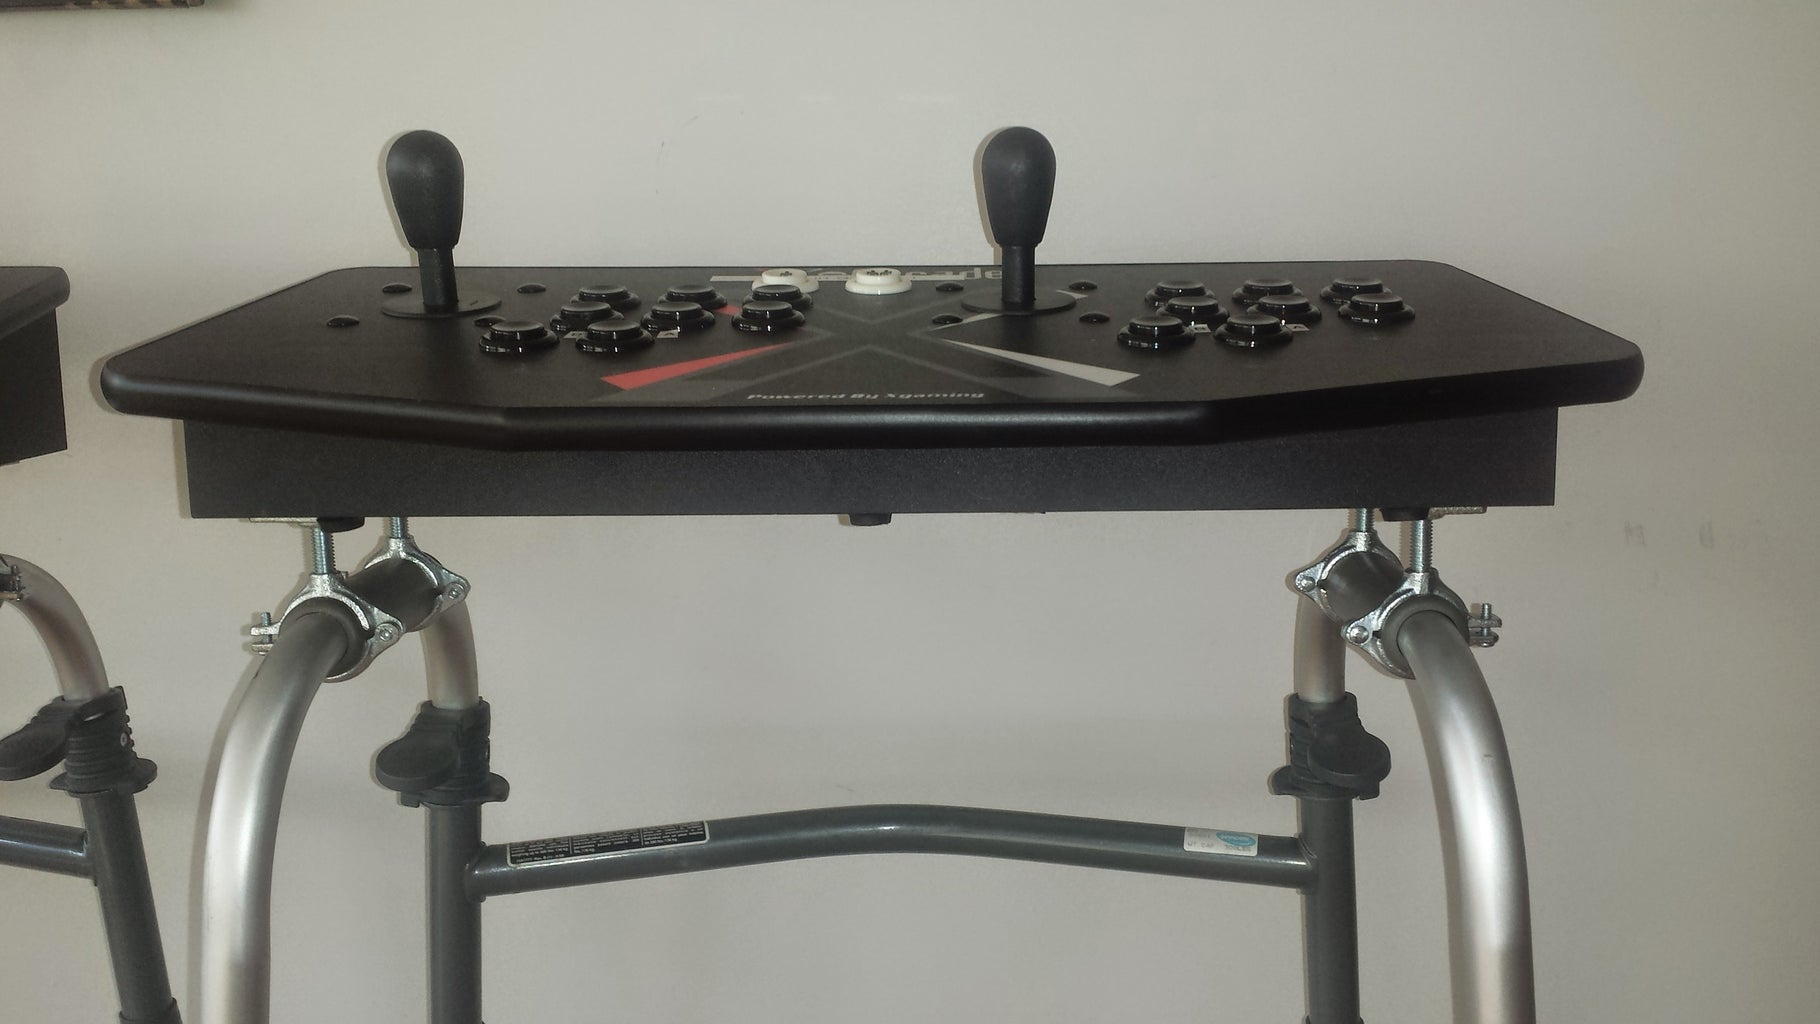 Stand Up Arcade Controllers Using Adult Walkers